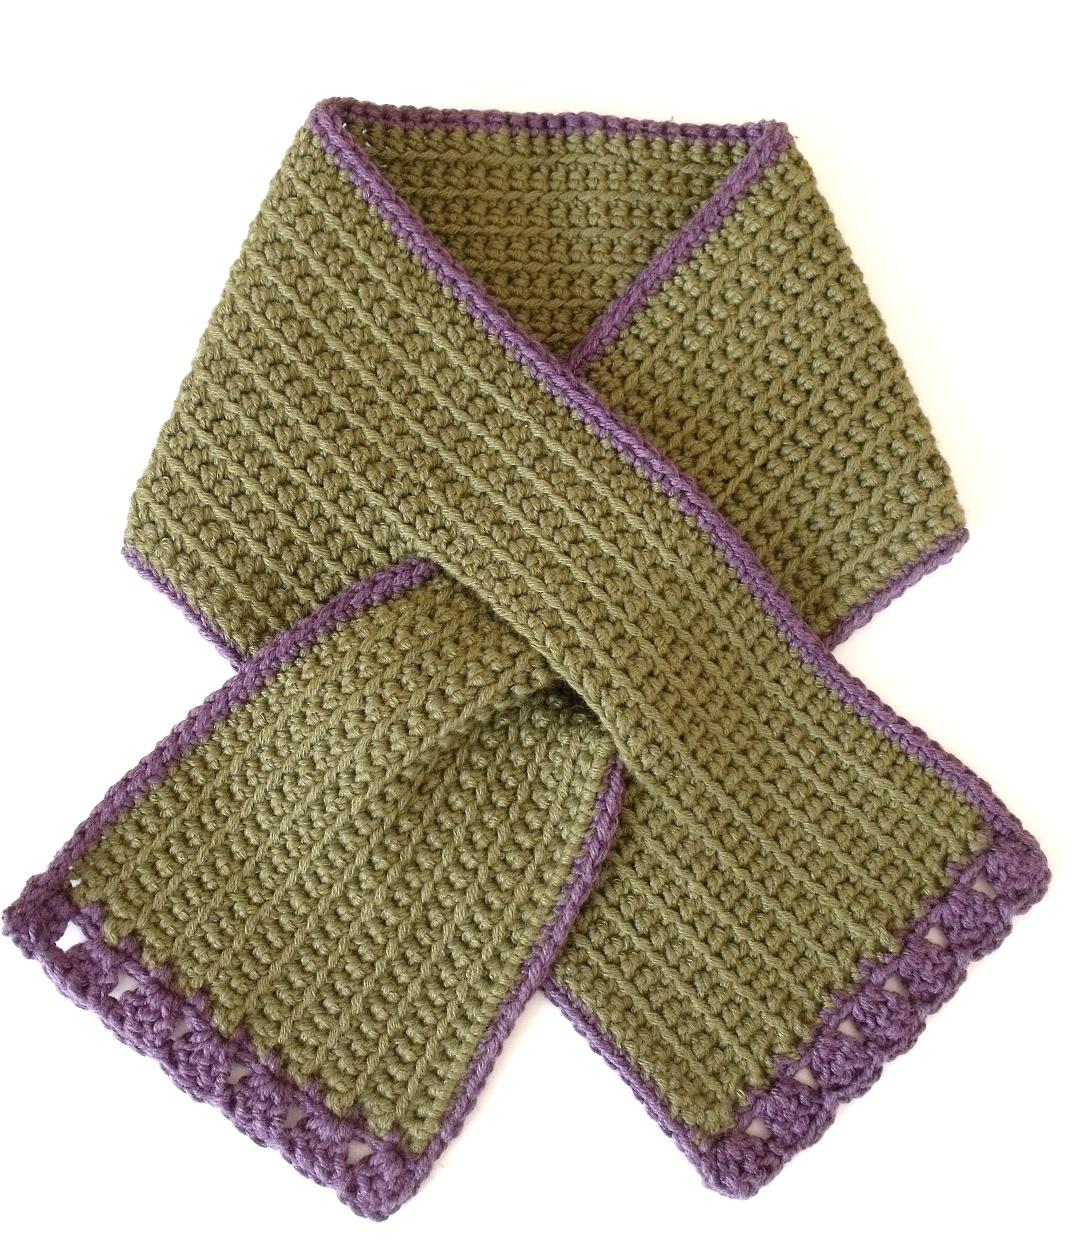 MICROCKNIT CREATIONS: TODDLER Keyhole Scarf